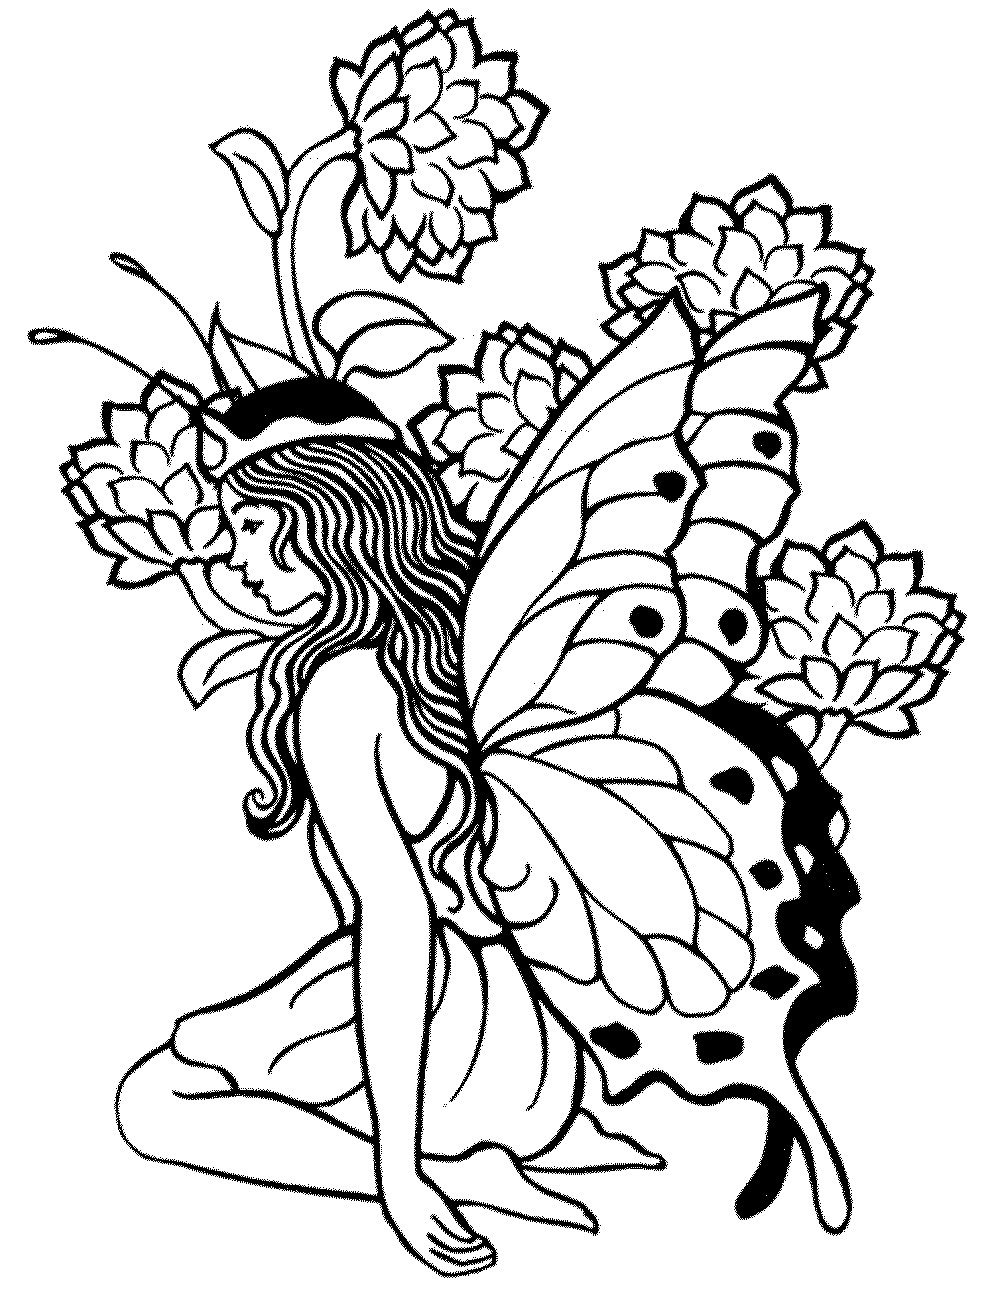 Free Printable Coloring Sheets Adults  Free Coloring Pages For Adults Printable Detailed Image 23